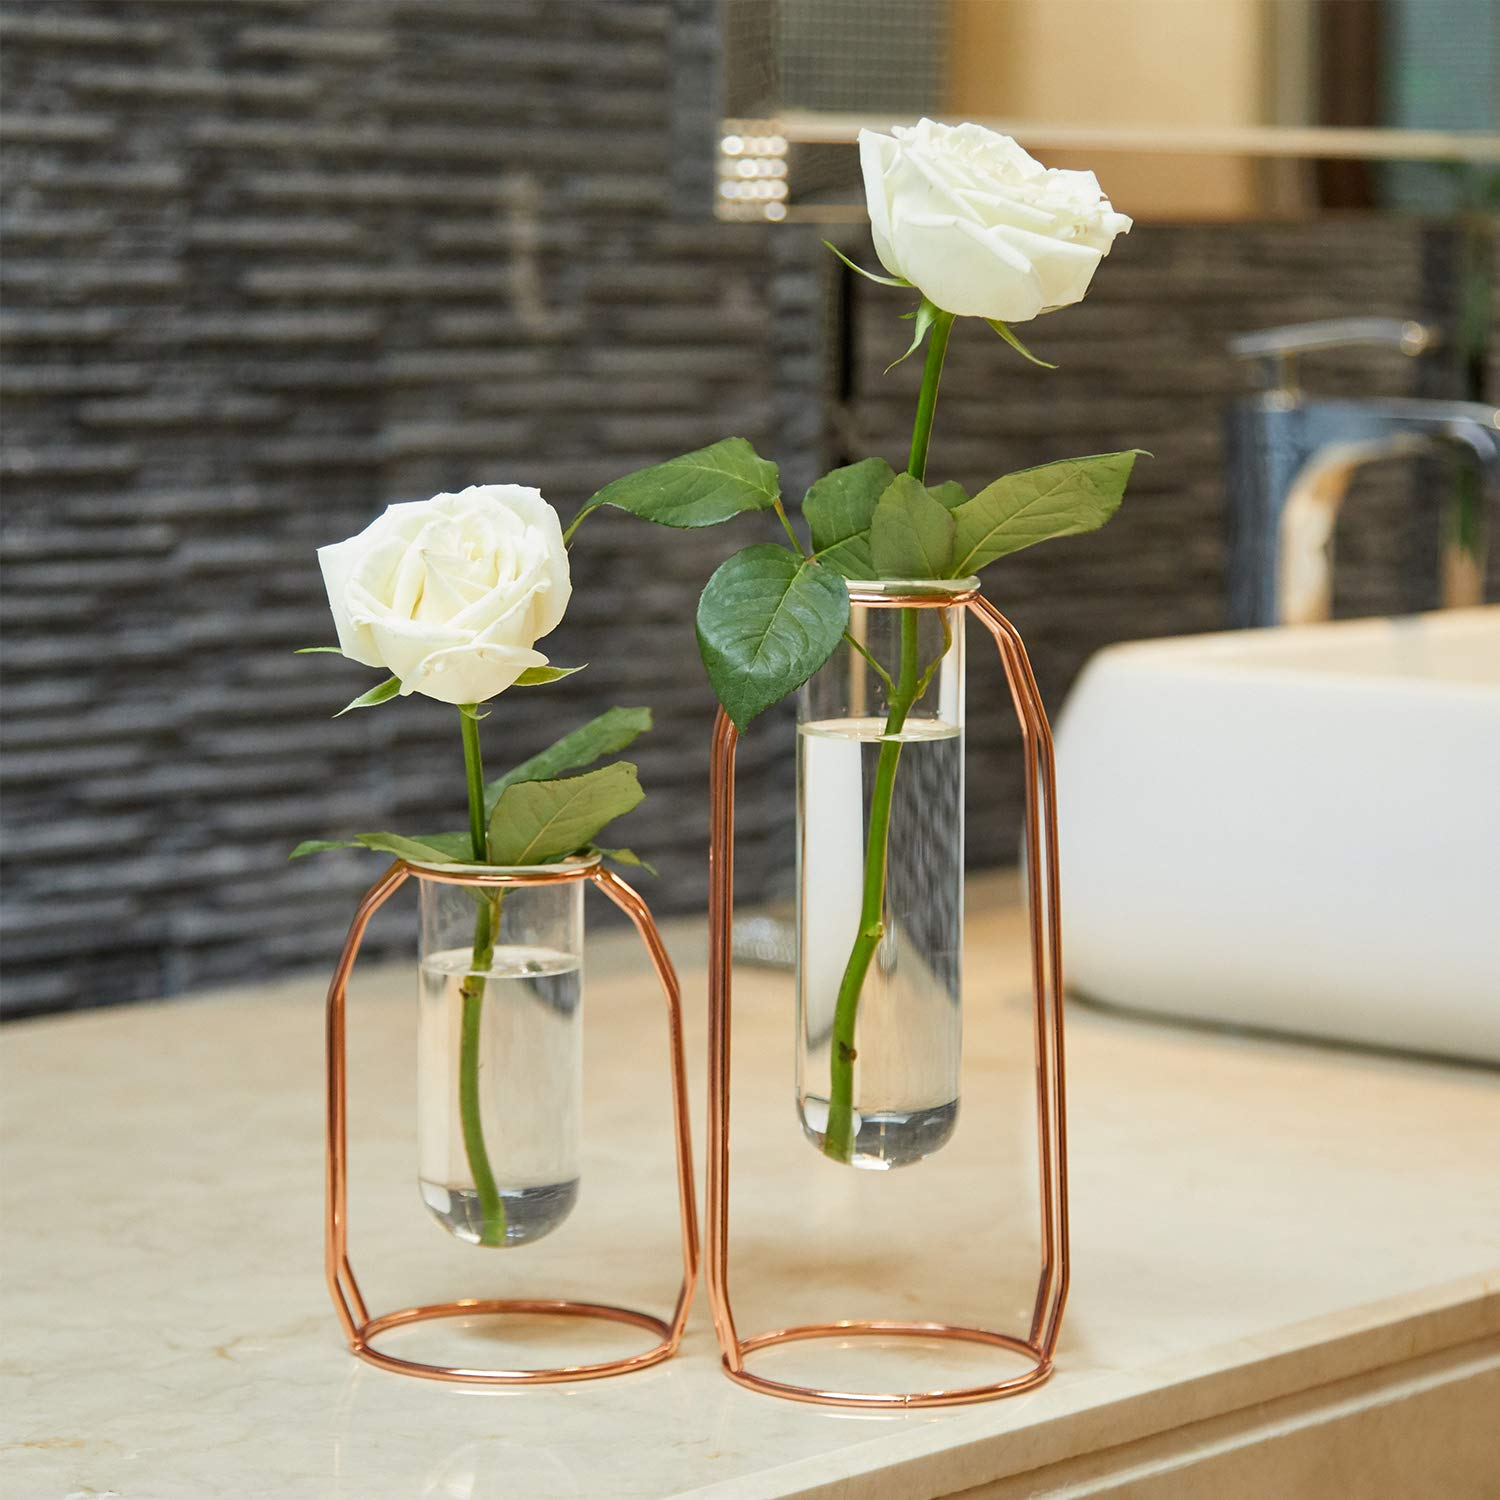 Amazon UK & PuTwo Glass Flower Vases Set of 2 Centrepiece Vases with Metal Stand Cylinder Clear Vases for Flowers Decoration for Living Room Bedroom Bathroom ...